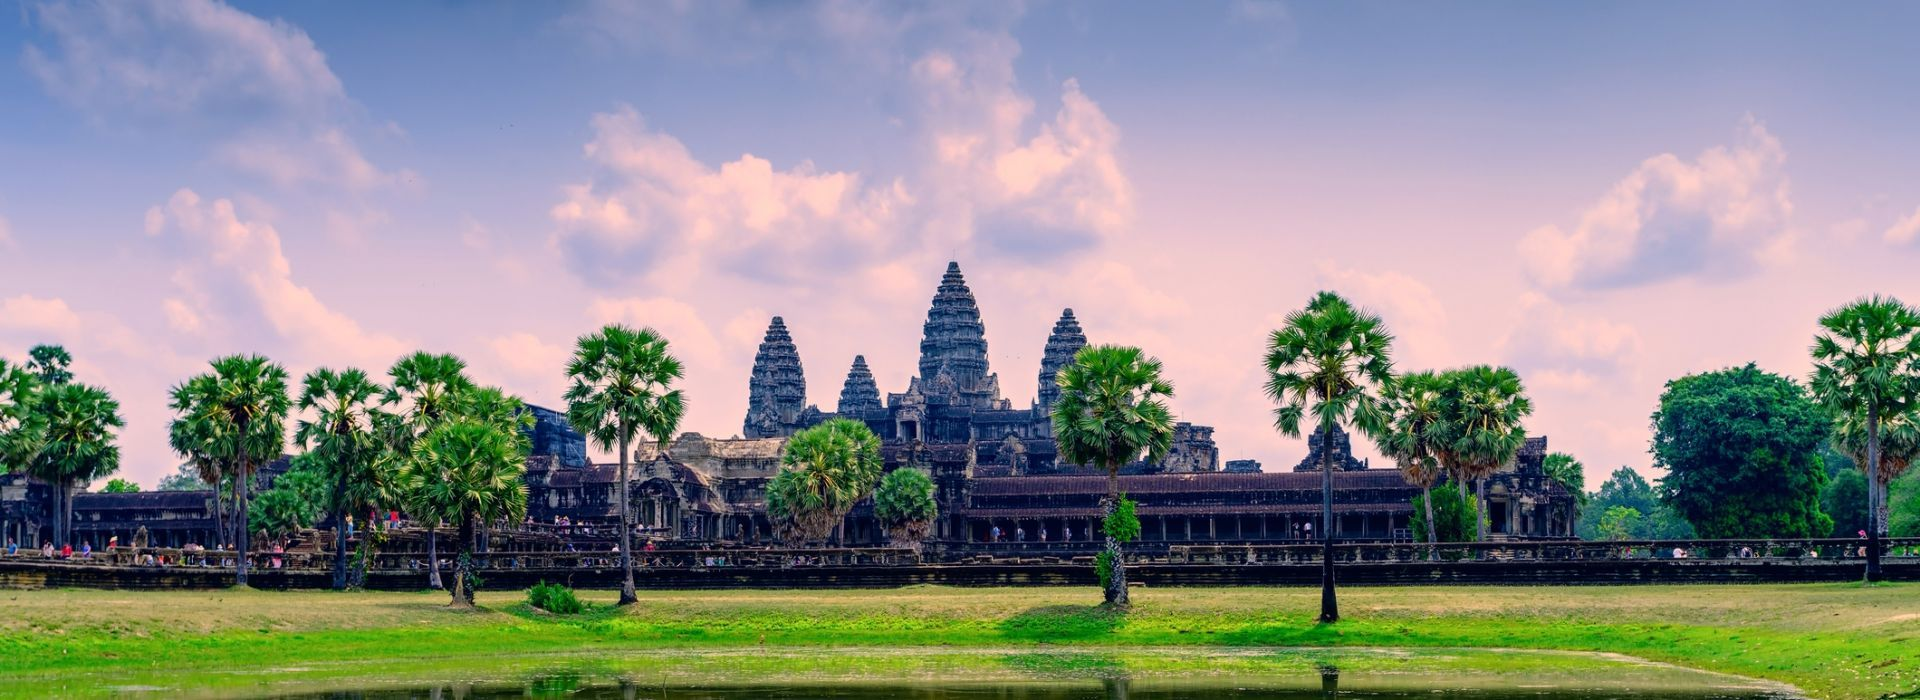 Food, wine, events and nightlife Tours in Cambodia